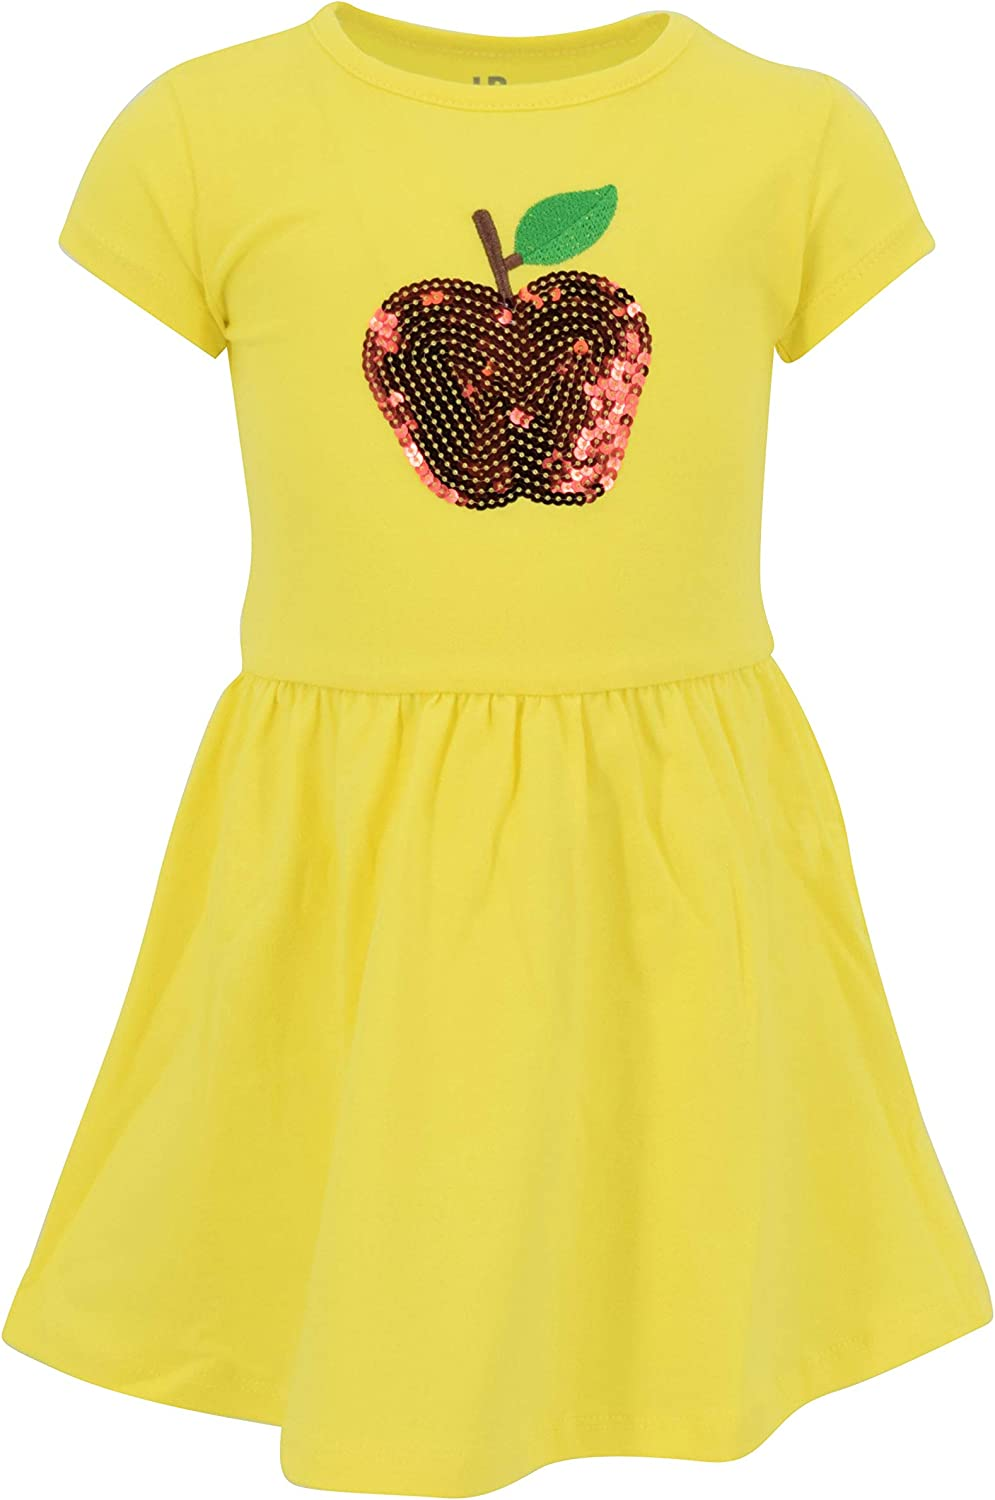 Unique Baby Girls Back to School Sequins Apple Dress Outfit